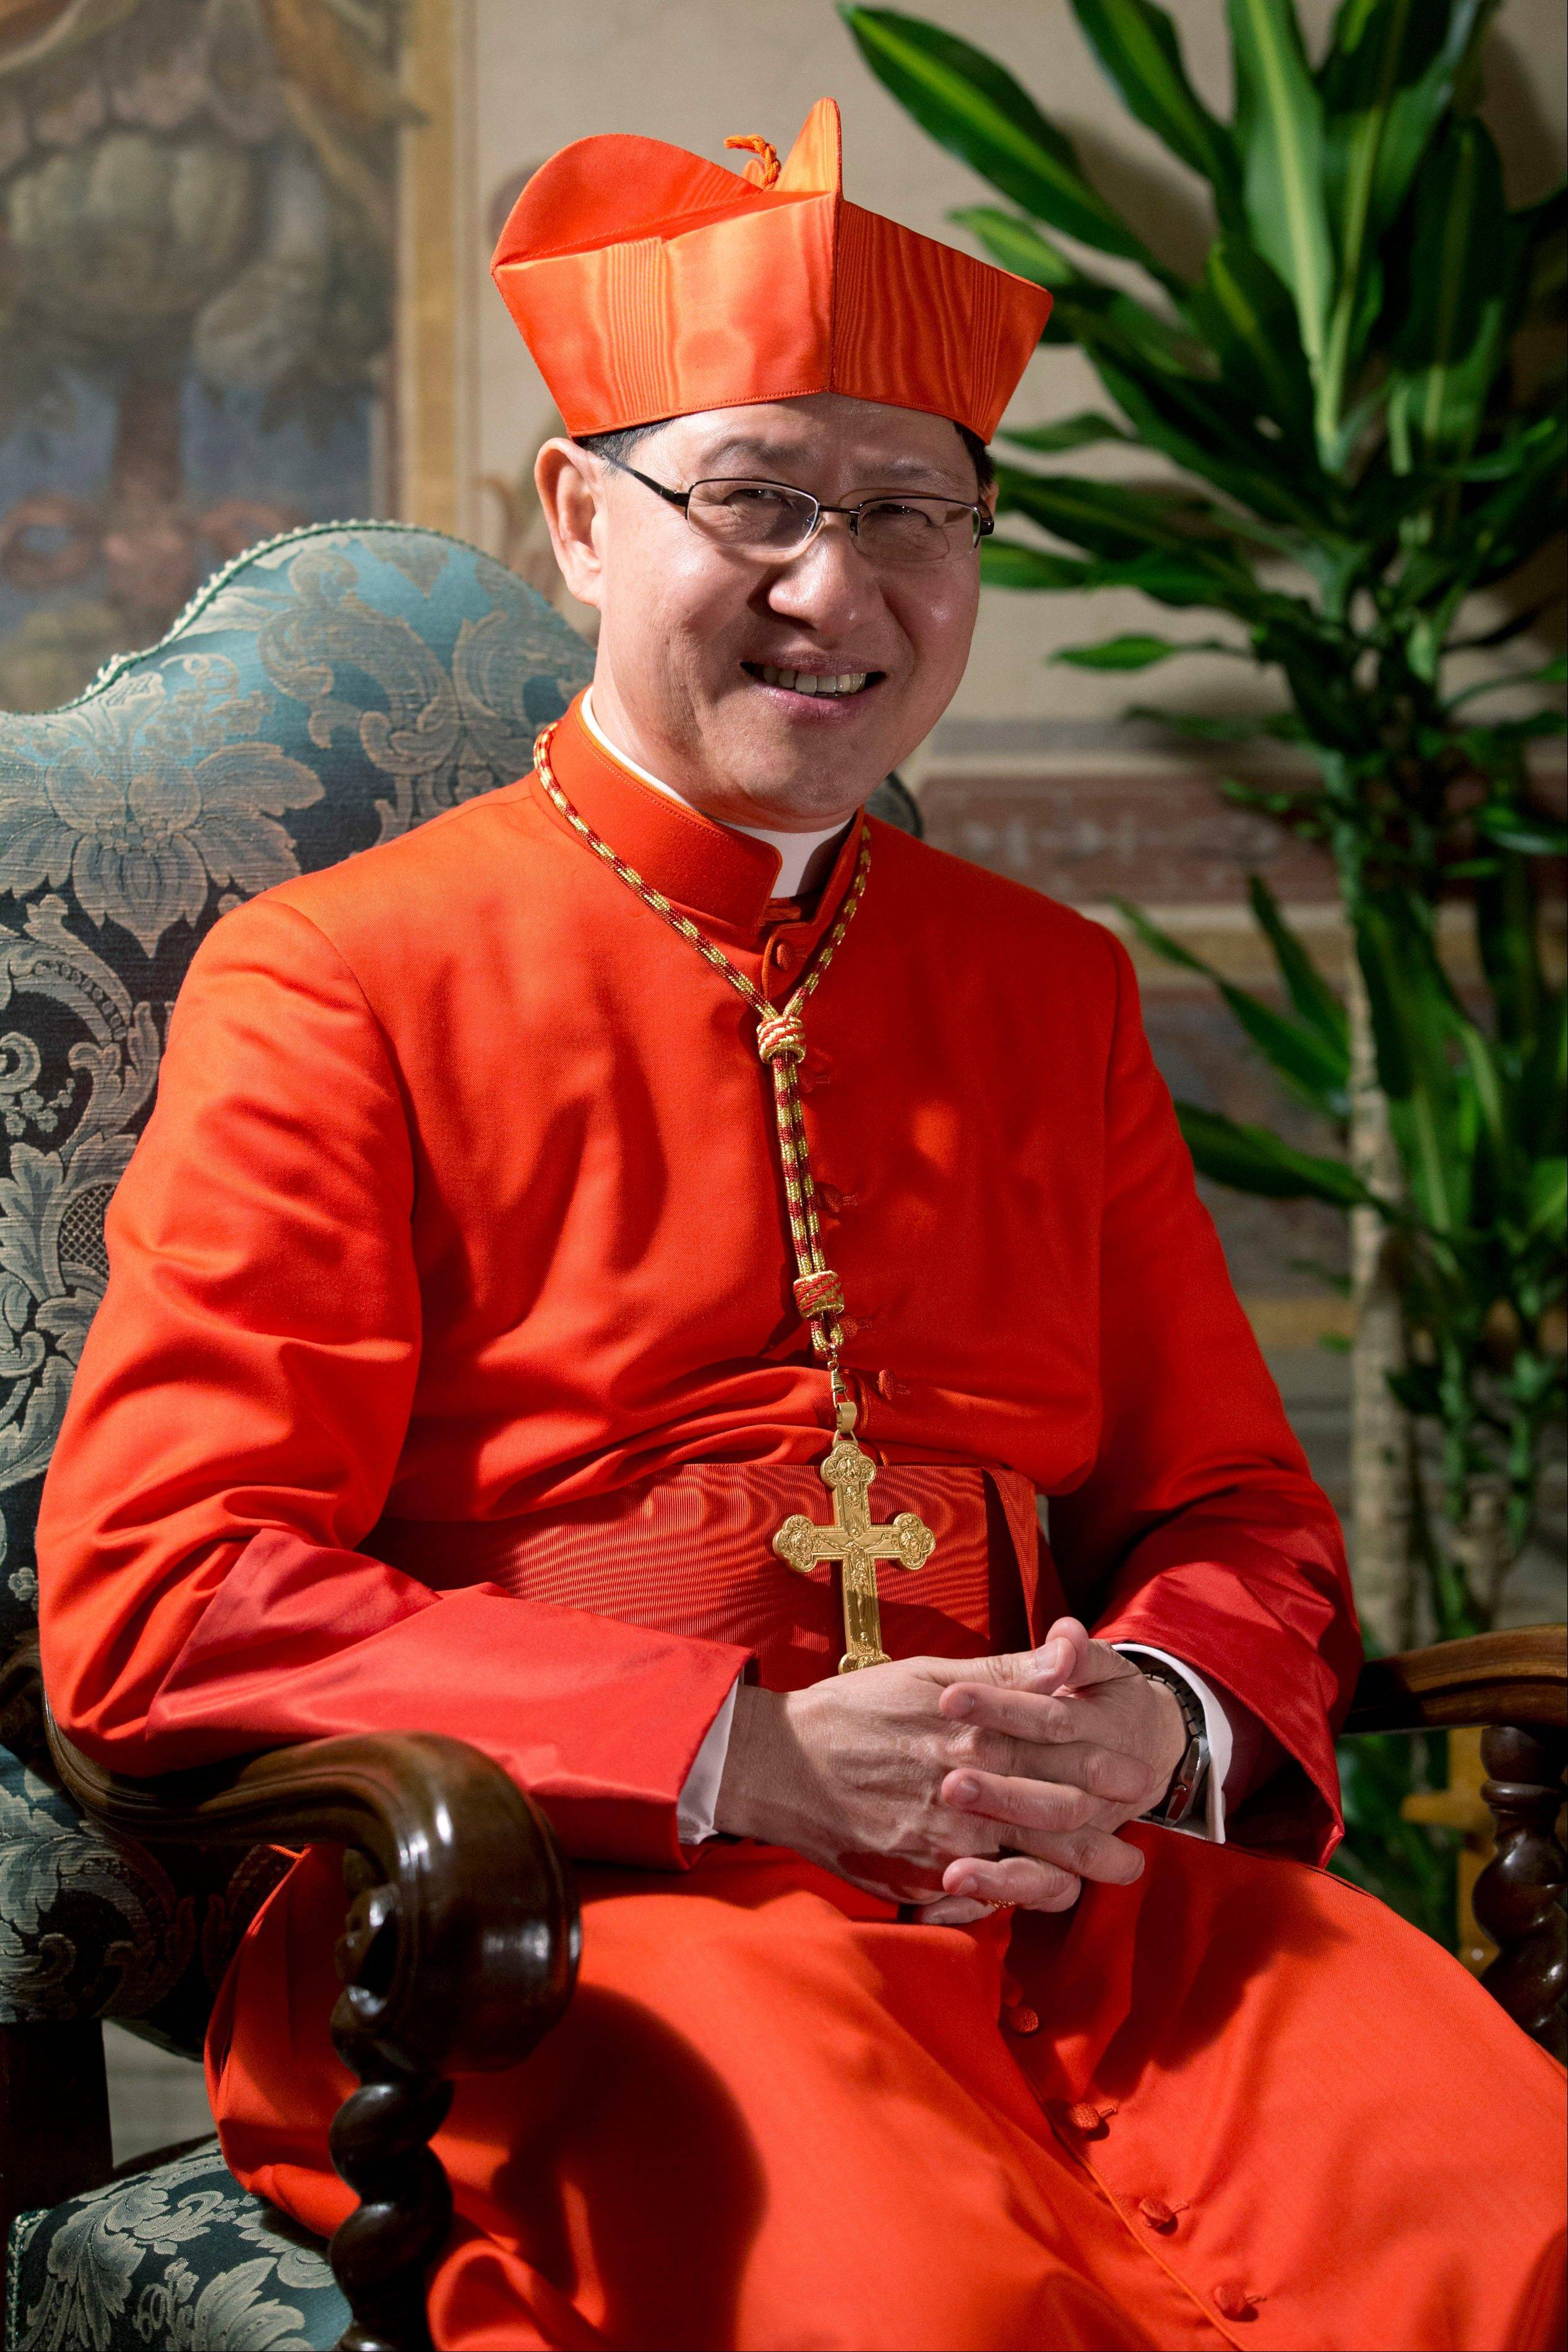 Filipino cardinal stirs papal talk with rapid rise